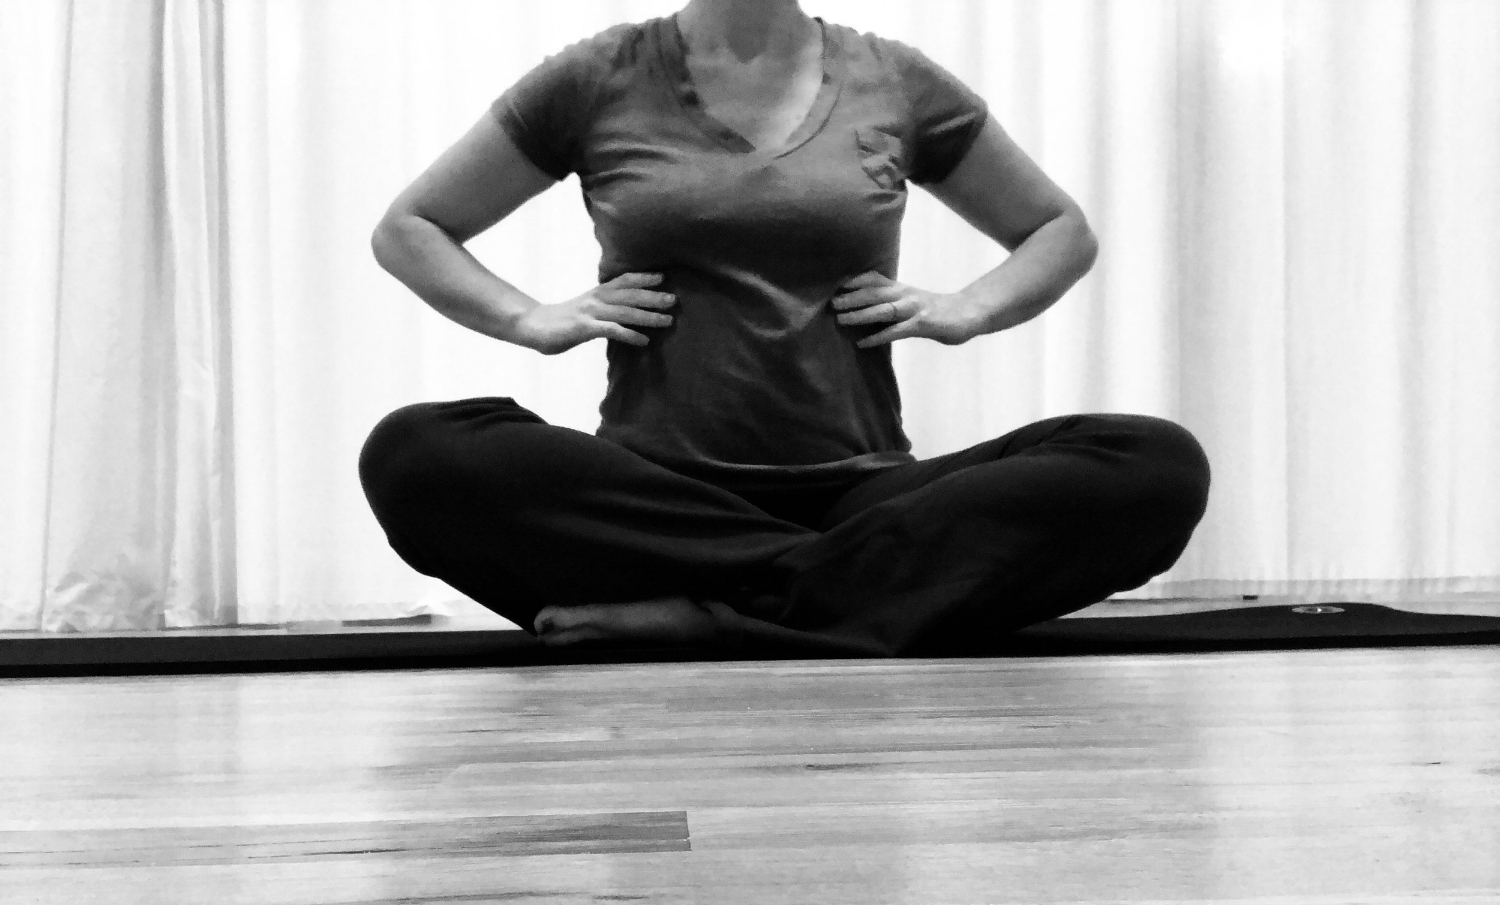 This is one of my favorites! It is a 3 step breathing exercise to help you gently connect to your deepest abdominal muscle (Transverse Abdominis) and to the pelvic floor.  1. Sit up tall directly over sitting bones, feeling belly button draw back towards the spine (You can also do this lying down). Place hands around rib cage and breathe into hands. Inhale widen ribcage and exhale narrow the ribs, feeling them pull together.  2. Place hands on hip bones. Again, breathe into hands and imagine hip bones widening like the rib cage (the hip bones will not really move. We are using imagery to help us find lower abdominals). Exhale and imagine the hip bones are narrowing towards each other. This will help activate the lower abdominal muscles and bring awareness to this area.  3. Picture your sitting bones. Inhale, breathe into the space between them and picture the sitting bones widening (pelvic floor releasing). Exhale imagine hip bones narrowing together (pelvic floor engaging gently). Be careful not to squeeze your glutes, instead really try to engage the pelvic floor. This may take some practice!